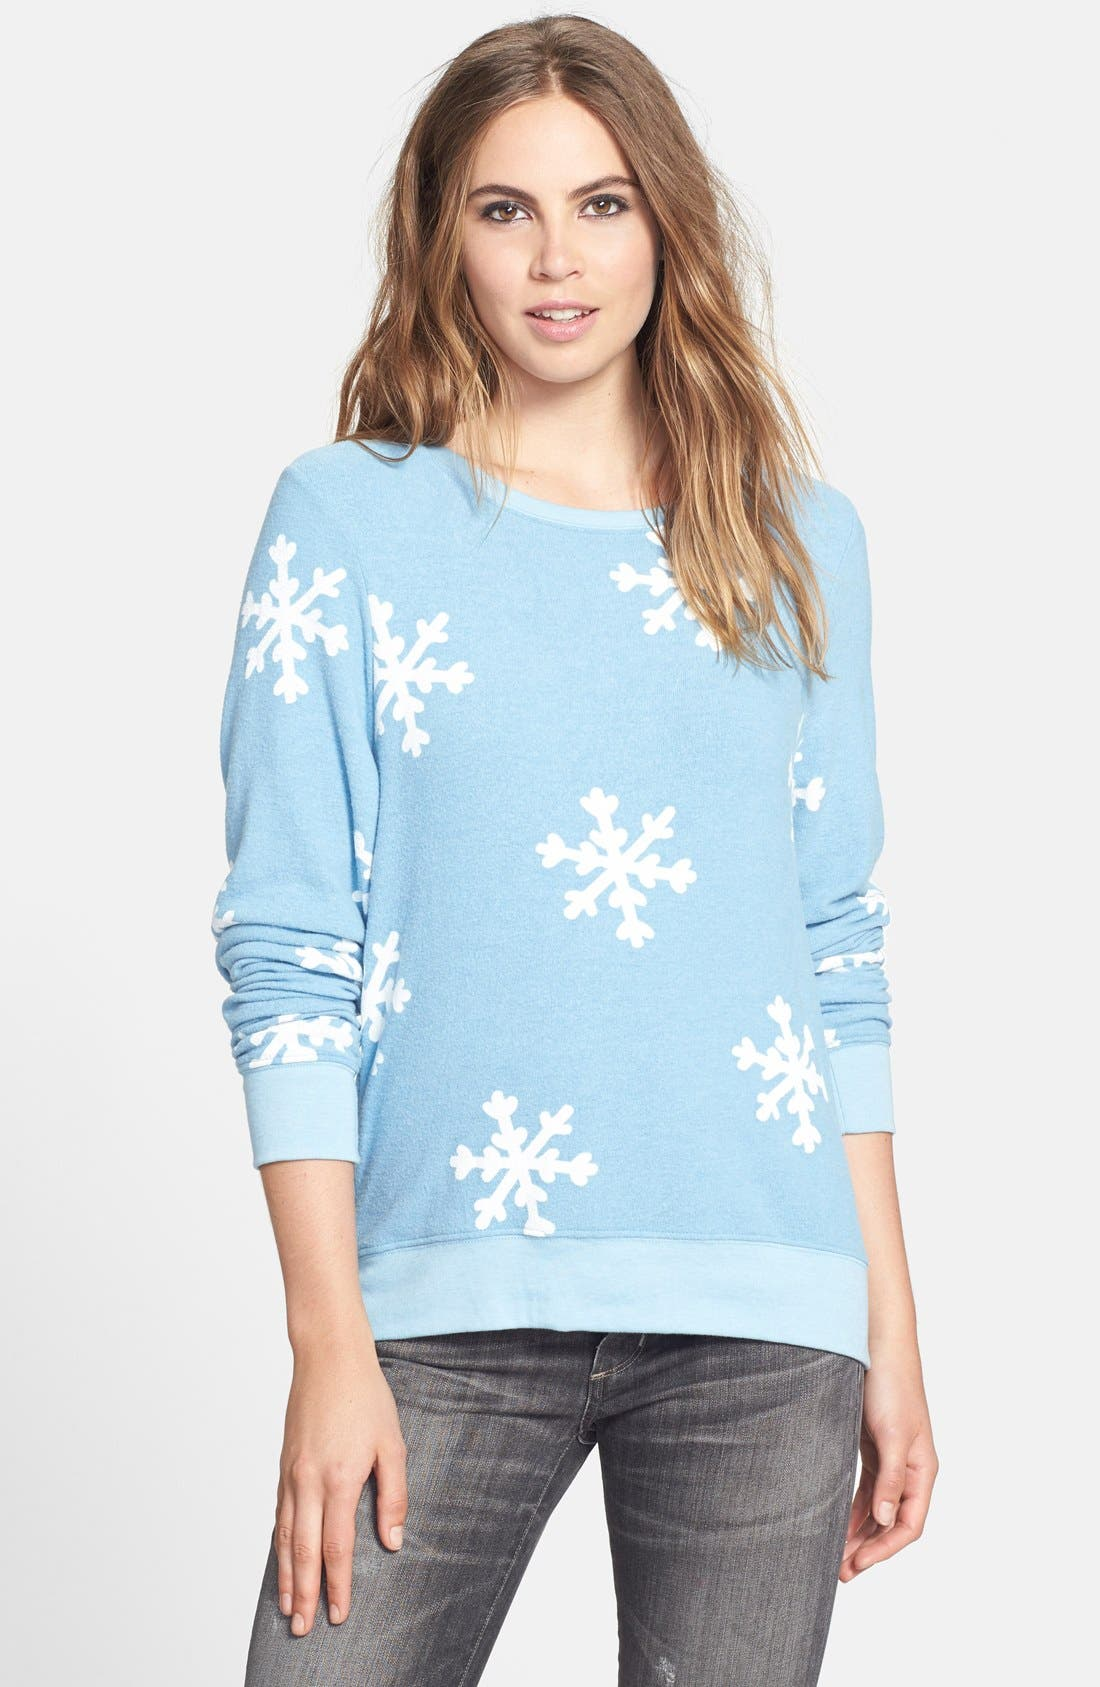 Alternate Image 1 Selected - Wildfox 'Snowflake' Baggy Beach Jumper Pullover